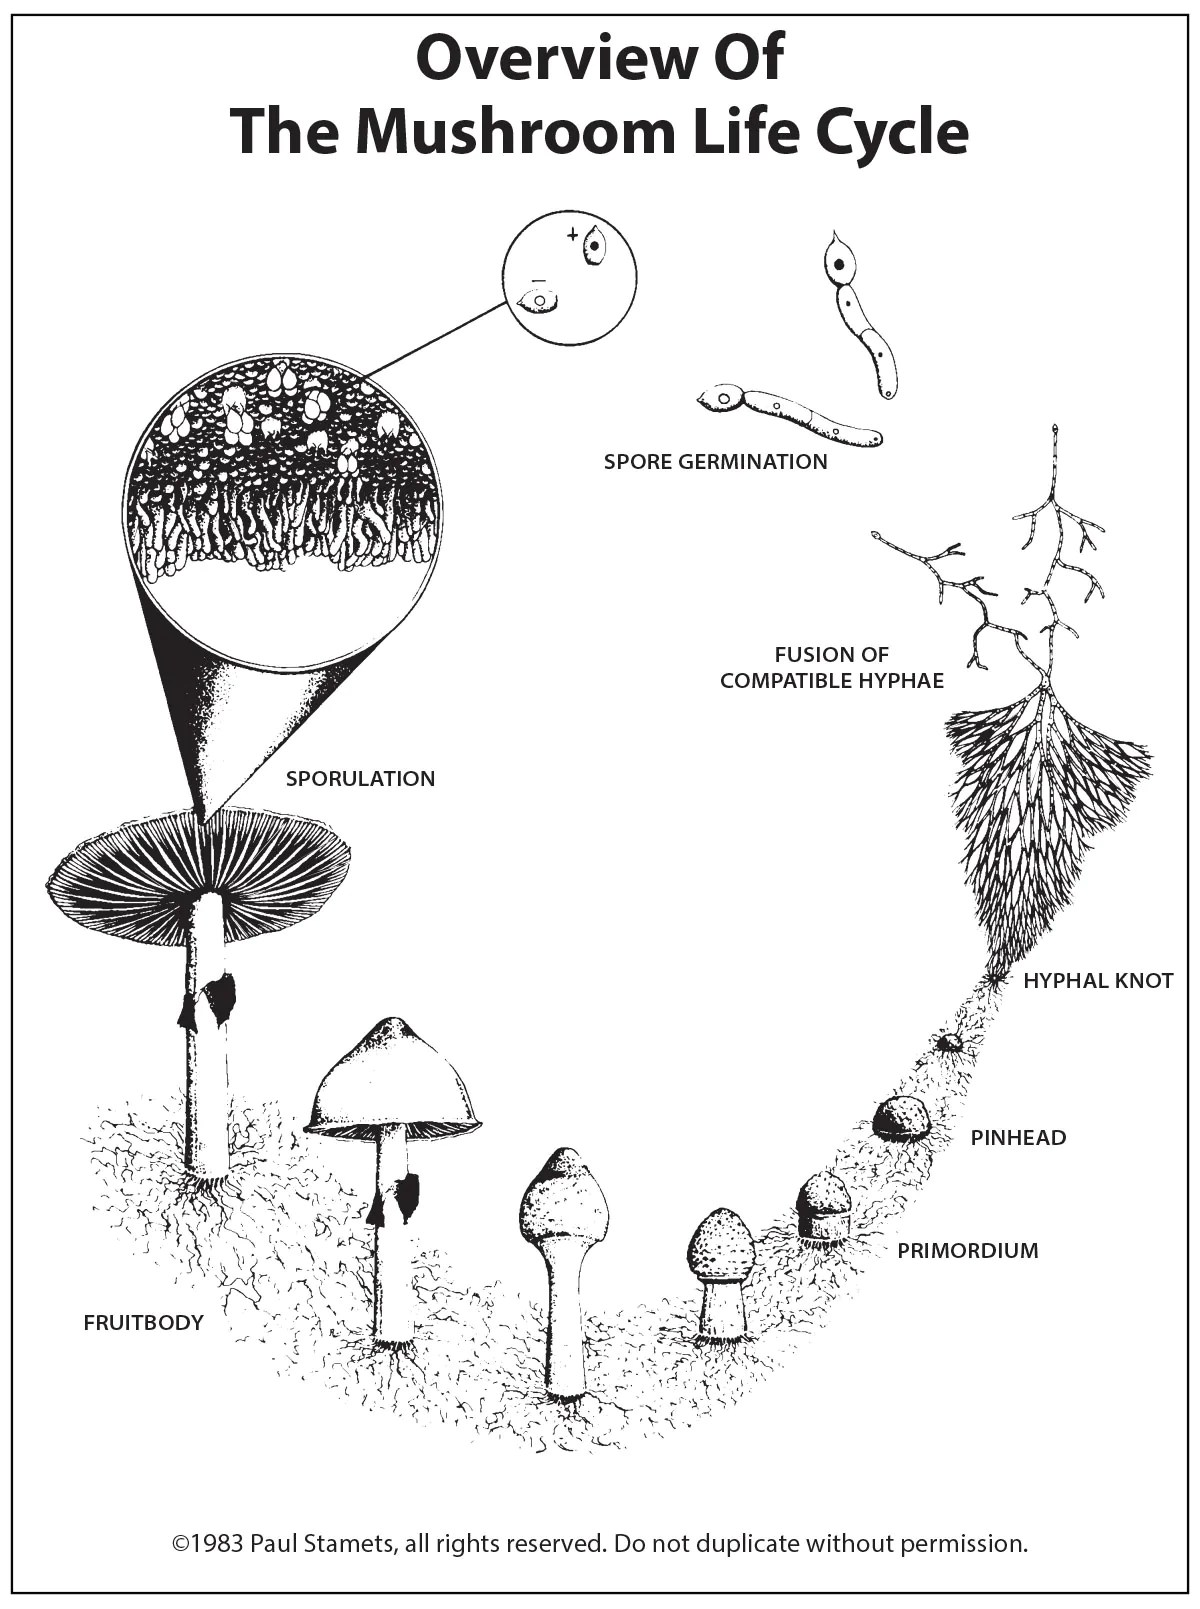 A Pictorial Overview of the Mushroom Life Cycle — Fungi Perfecti